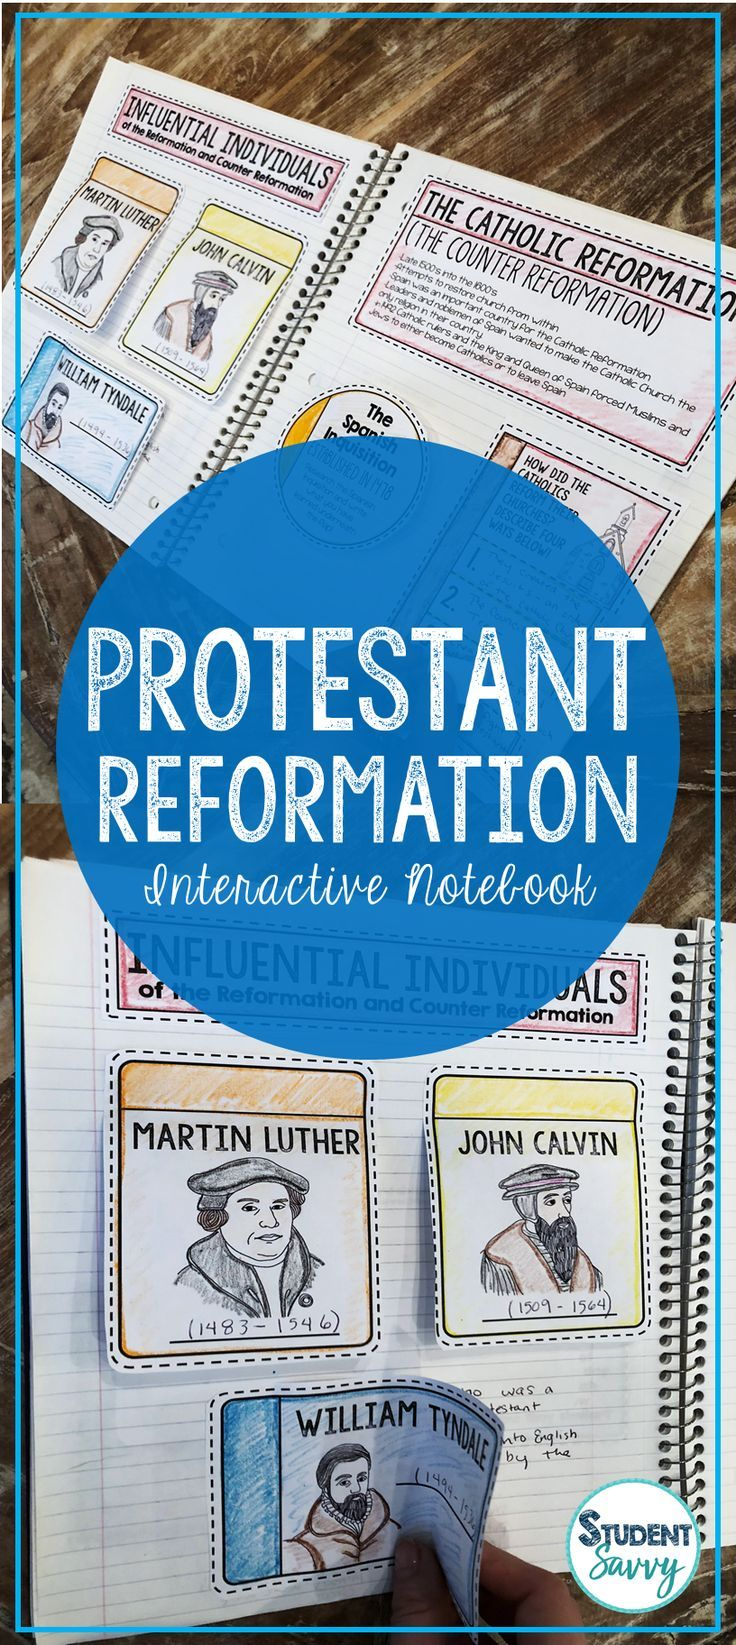 The Reformation Interactive Notebook! Protestant Reformation, Martin Luther, The Ninety-Five Theses, Catholic Reformation (Counter-Reformation), Spanish Inquisition, Jesuits, Ursuline Order, Council of Trent, John Calvin, William Tyndale, King Henry VIII, St. Ignatius of Loyola, Francis Xavier, St. Bartholomew's Day Massacre, Thirty Years' War, Edict of Nantes, Missionaries, Religious Wars, Social Changes and Effects of the Reformation and Much More!